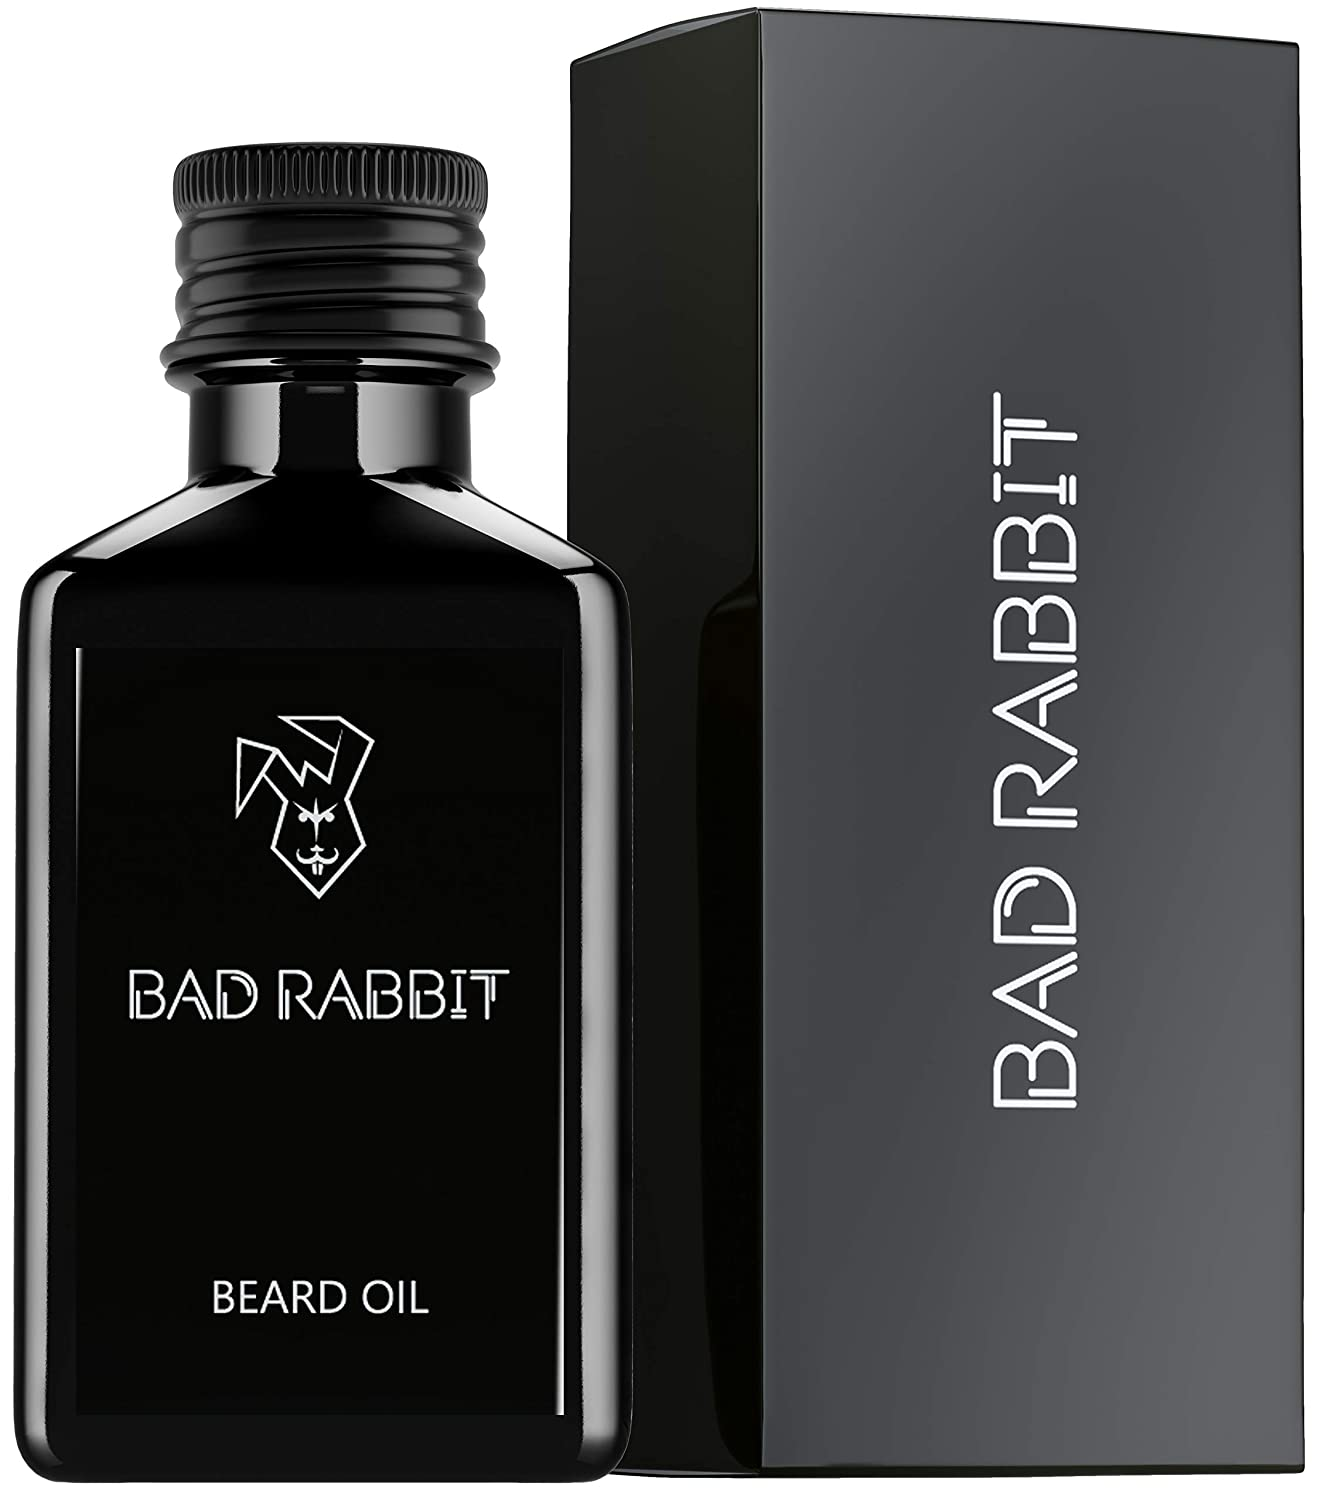 Beard softener oil For Men - Ultra-Moisturizer - Conditions and Promotes Growth for Soft and Itch Free Facial Hair, Leave-in Argan Oil jojoba oil Formula Grooms Beard and Mustache